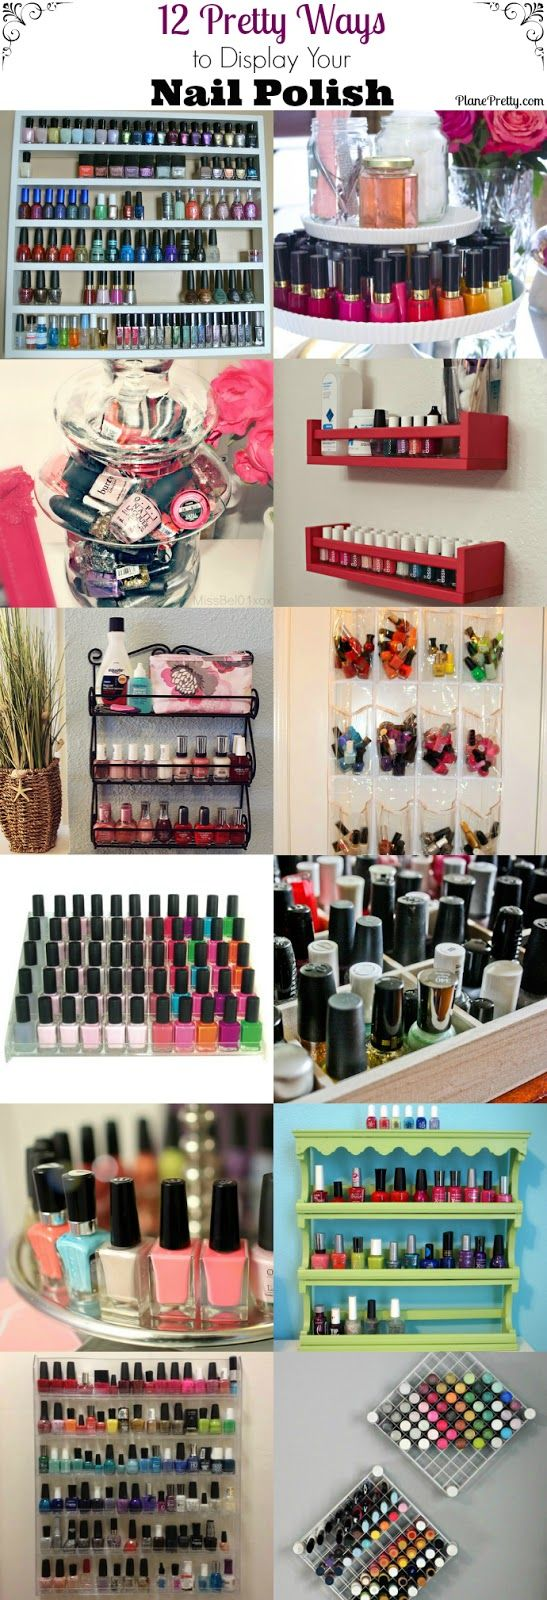 nail polish organization, nail polish display... If I could only pick one...   via @angela4design